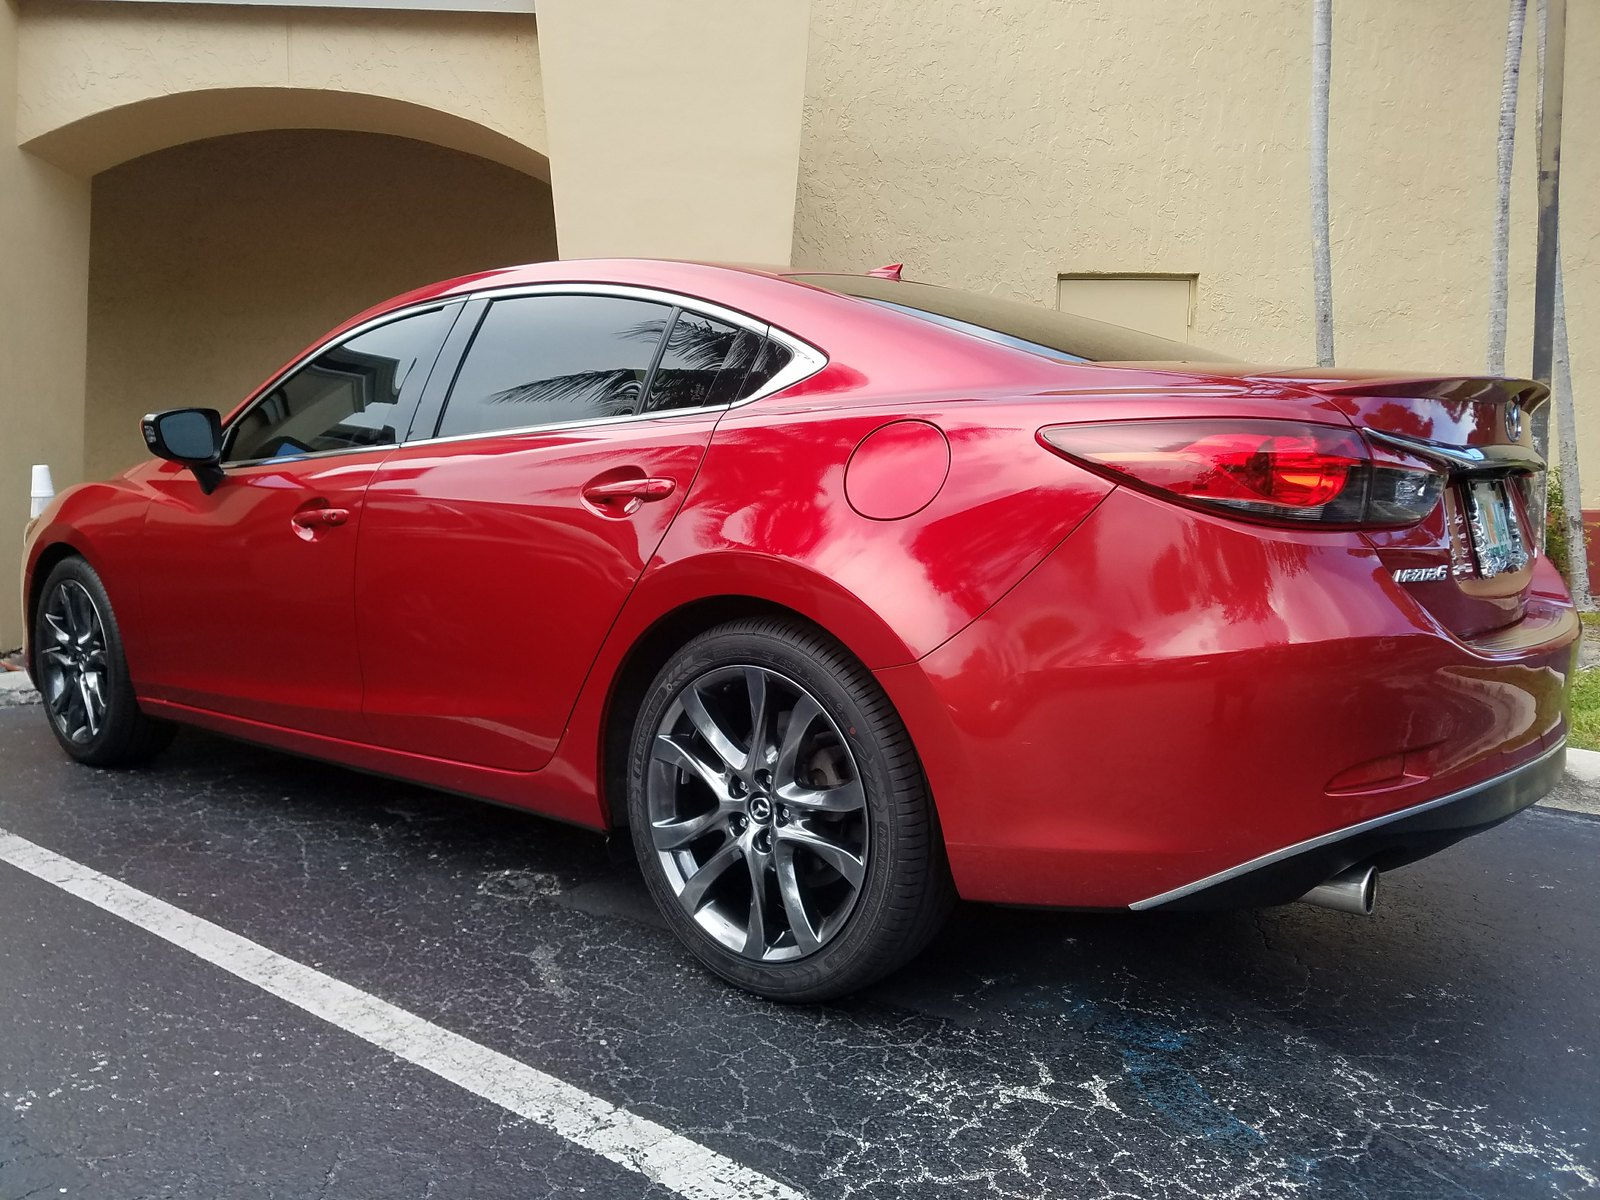 2015 mazda 6 grand touring soul red mazda 6 forums. Black Bedroom Furniture Sets. Home Design Ideas